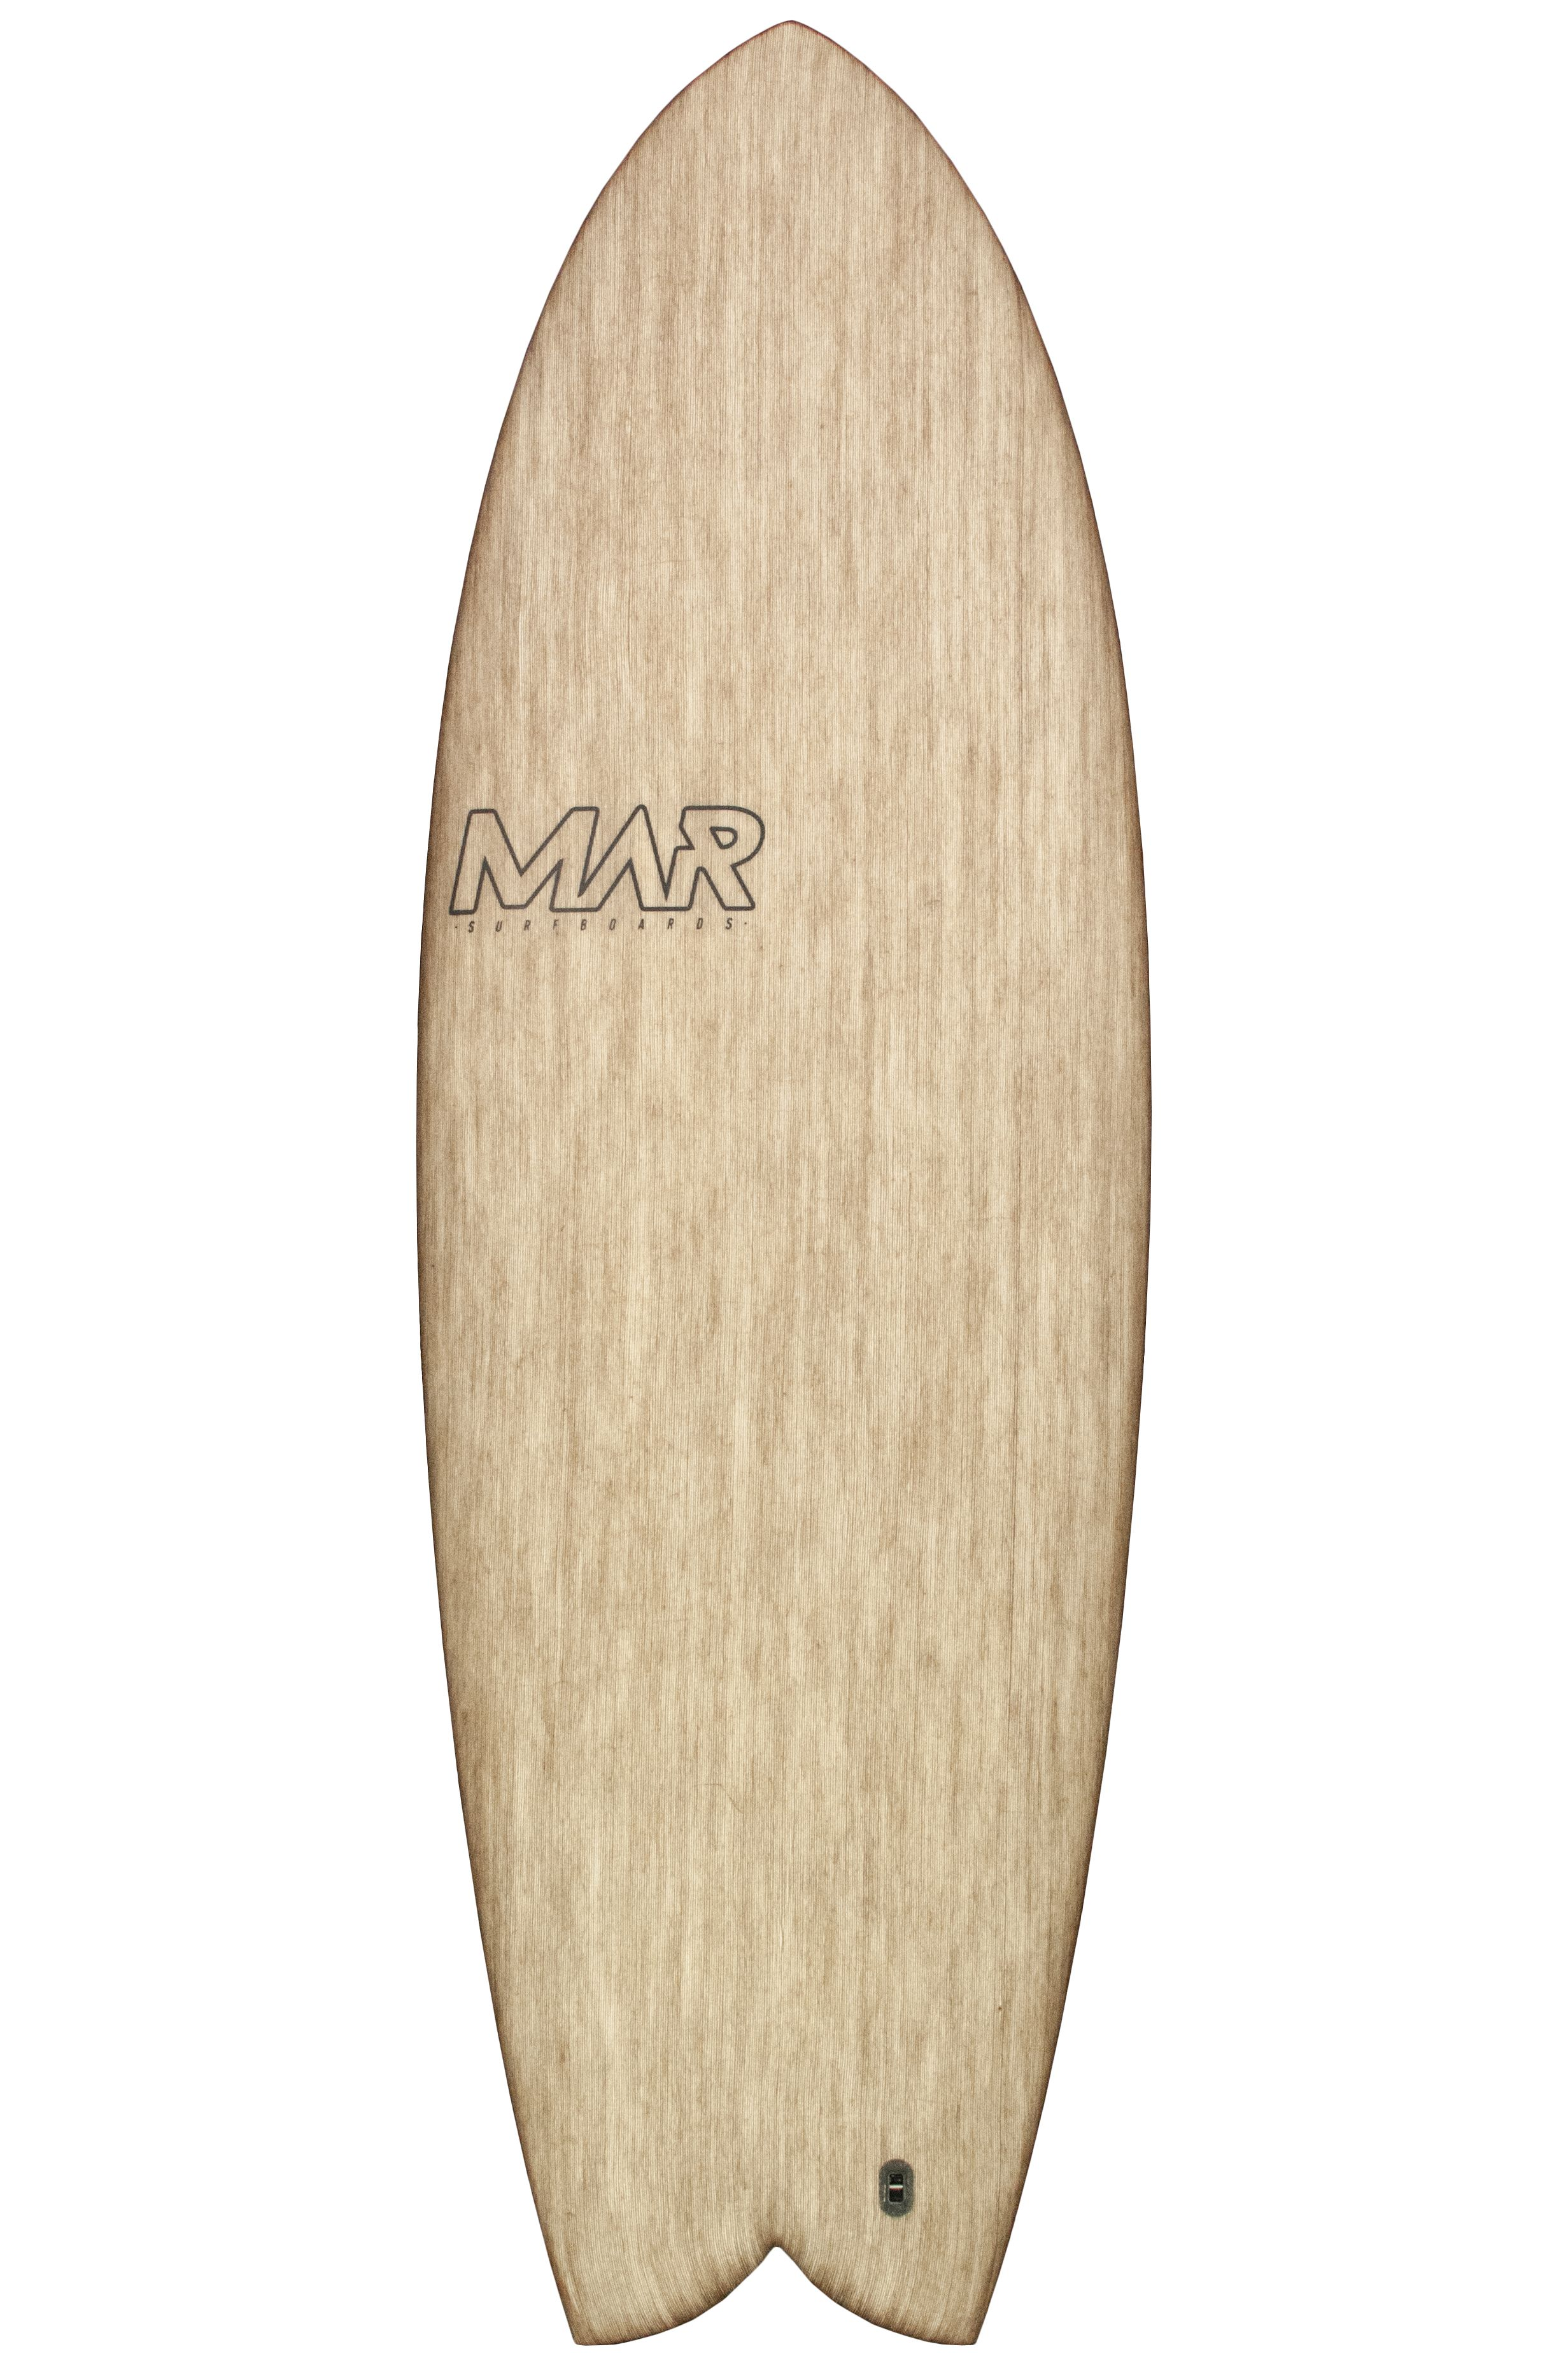 Mar Surf Board 5'4 THE 2 Swallow Tail - Color FCS II Twin Tab 5ft4